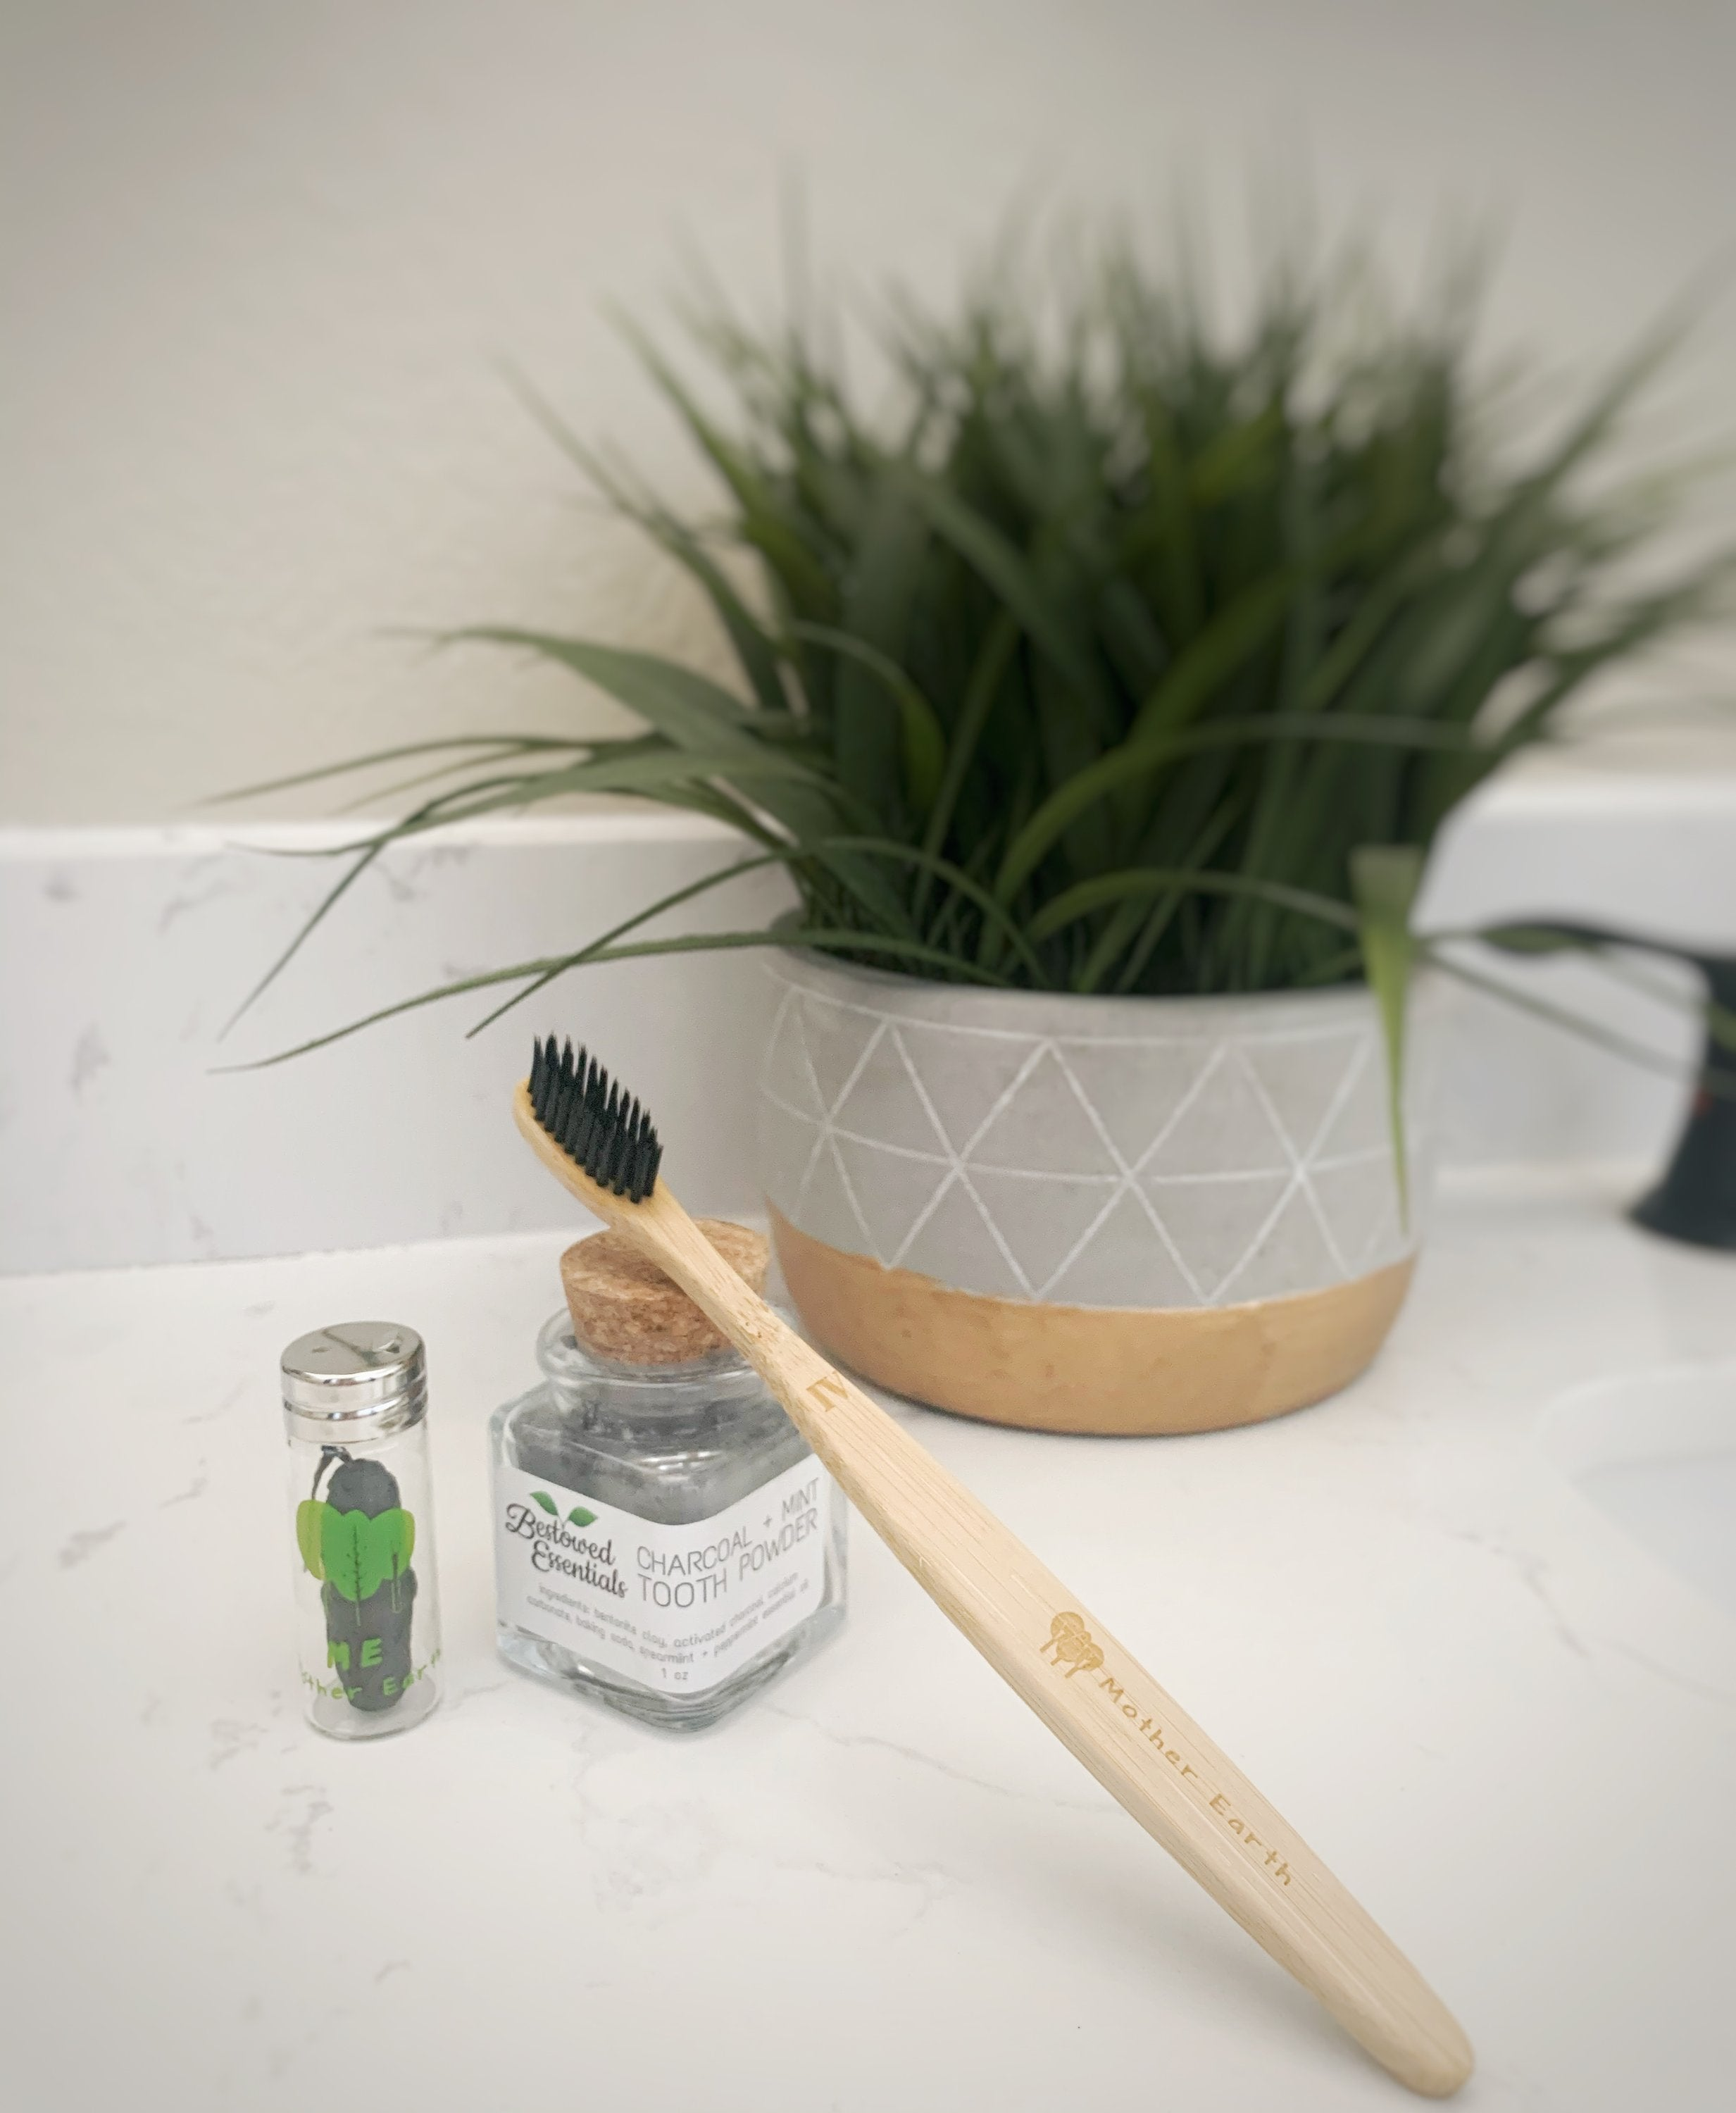 Two Bamboo Toothbrushes + Eco Dental Floss + Charcoal Toothpowder